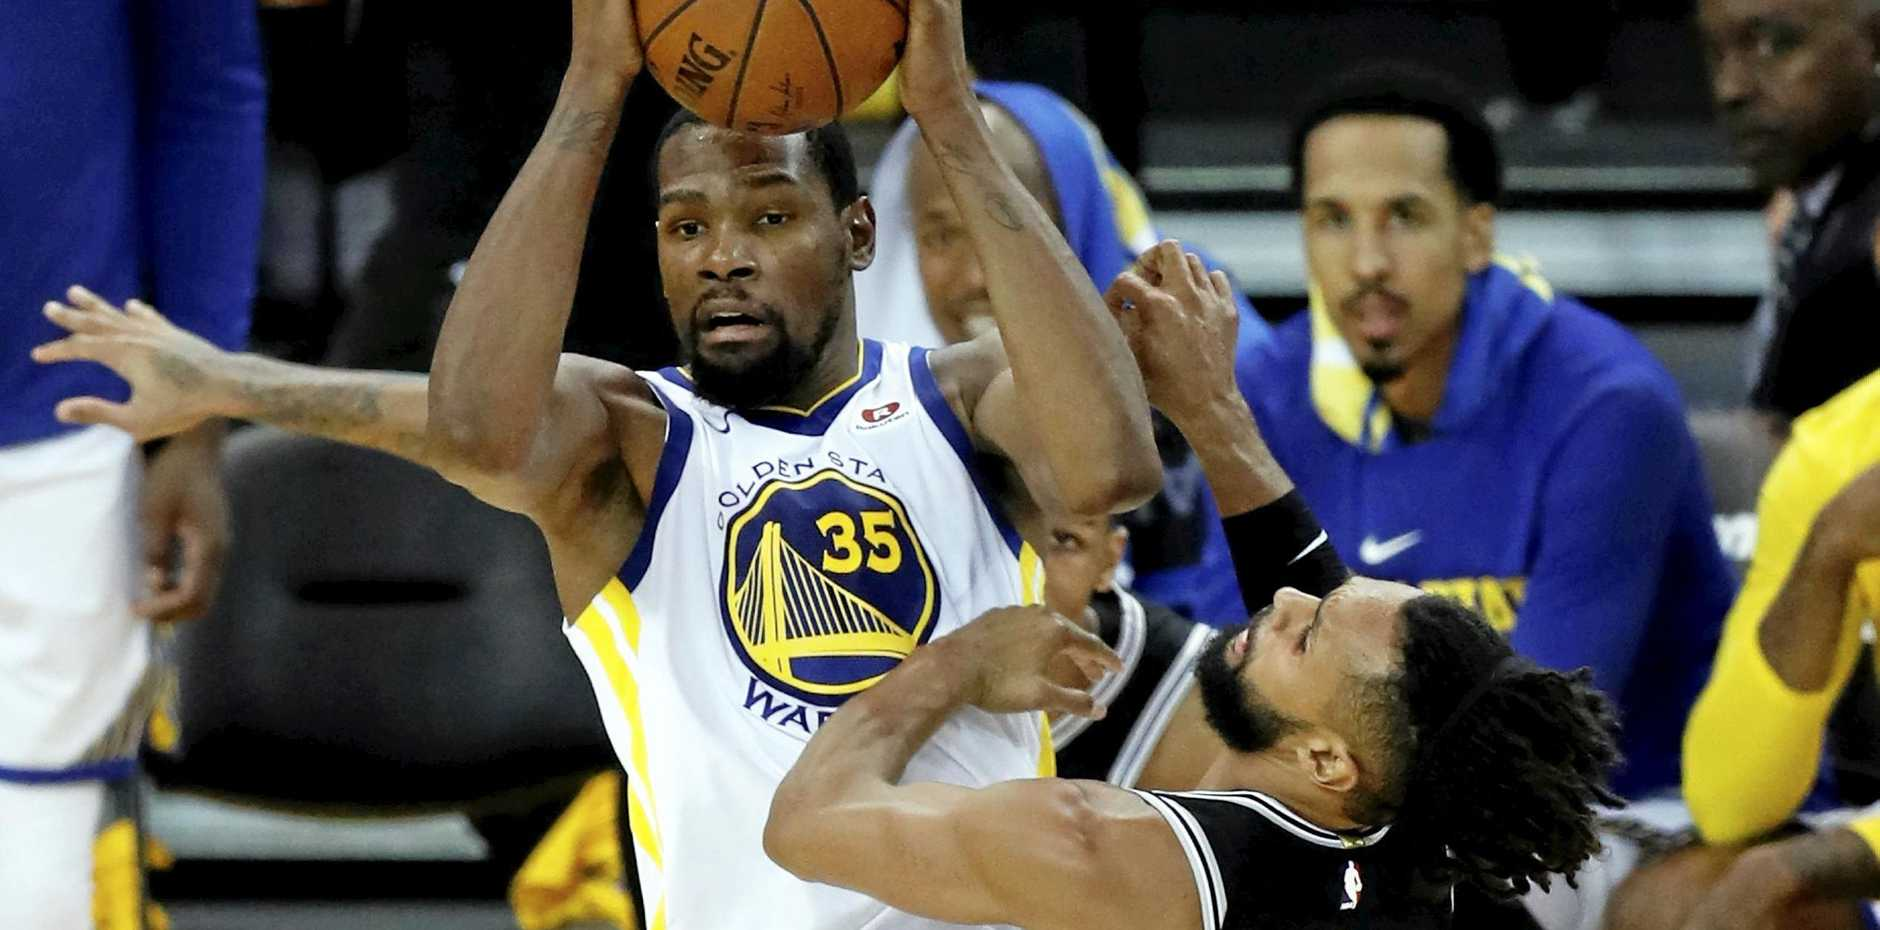 Golden State forward Kevin Durant looks to pass as he gets some attention from San Antonio Spurs guard Patty Mills in the fifth game of their NBA playoff series on Wednesday, April 25 (AEST).